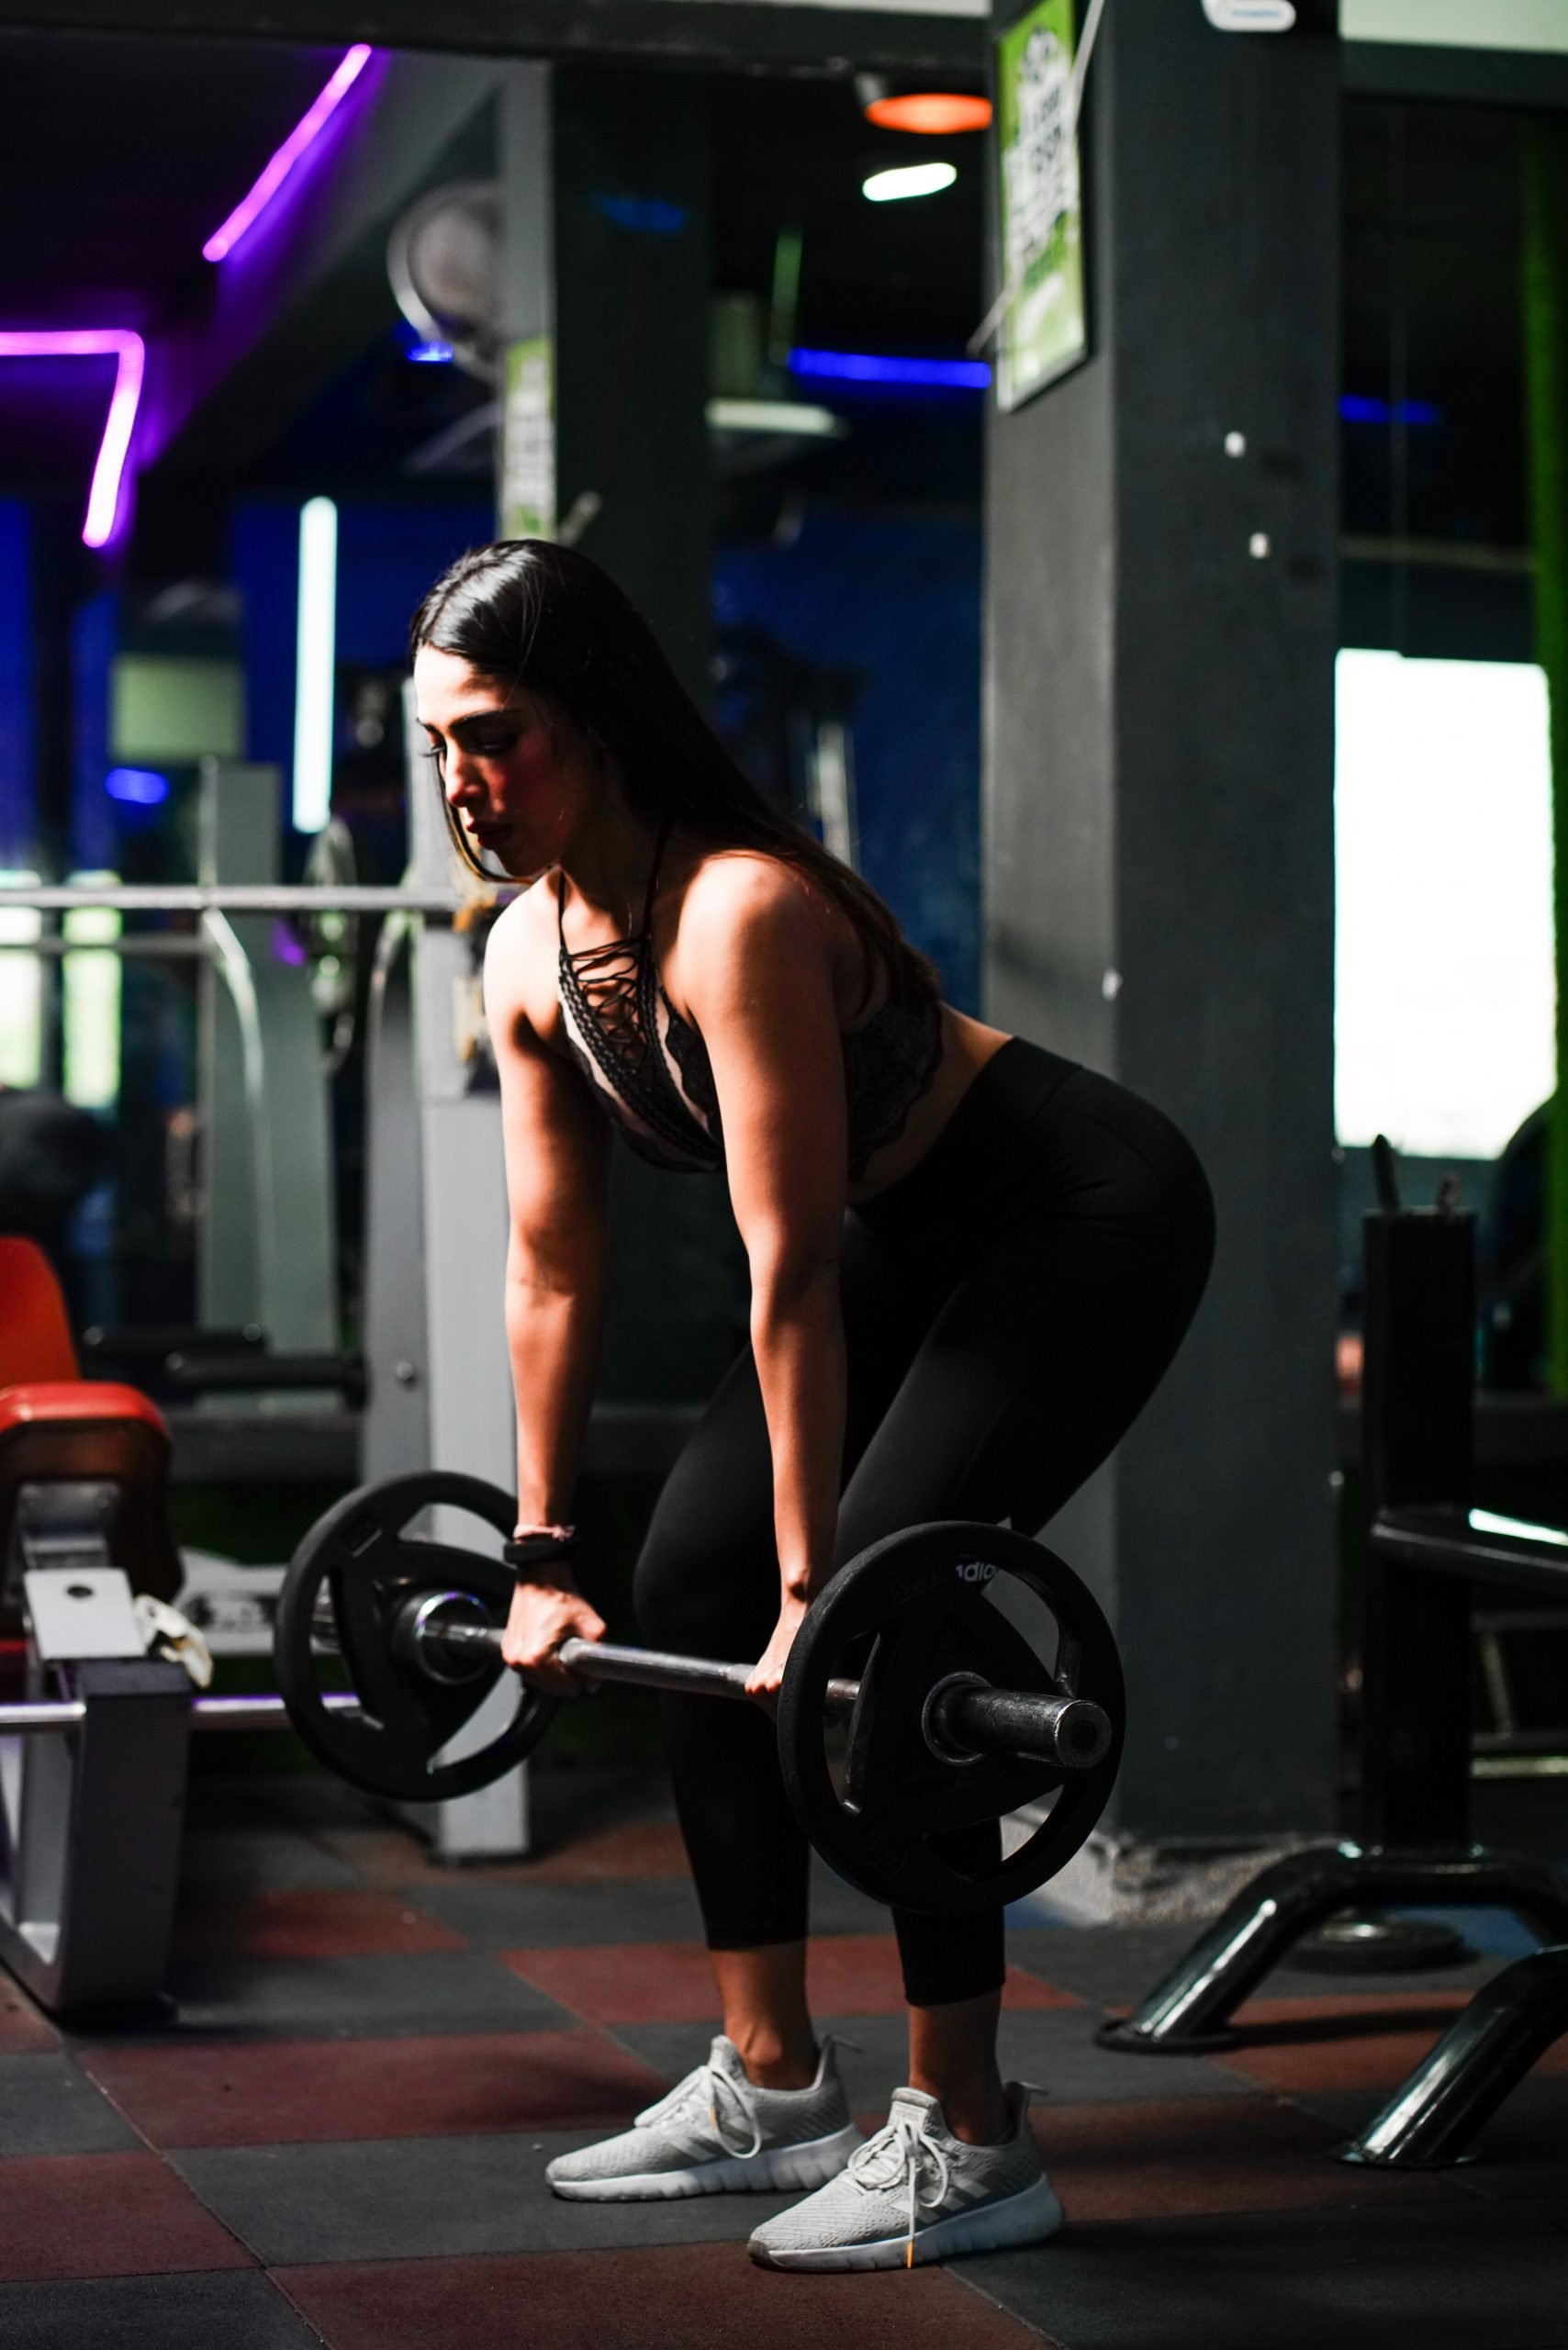 Muscles Woman exercising with barbell in gym